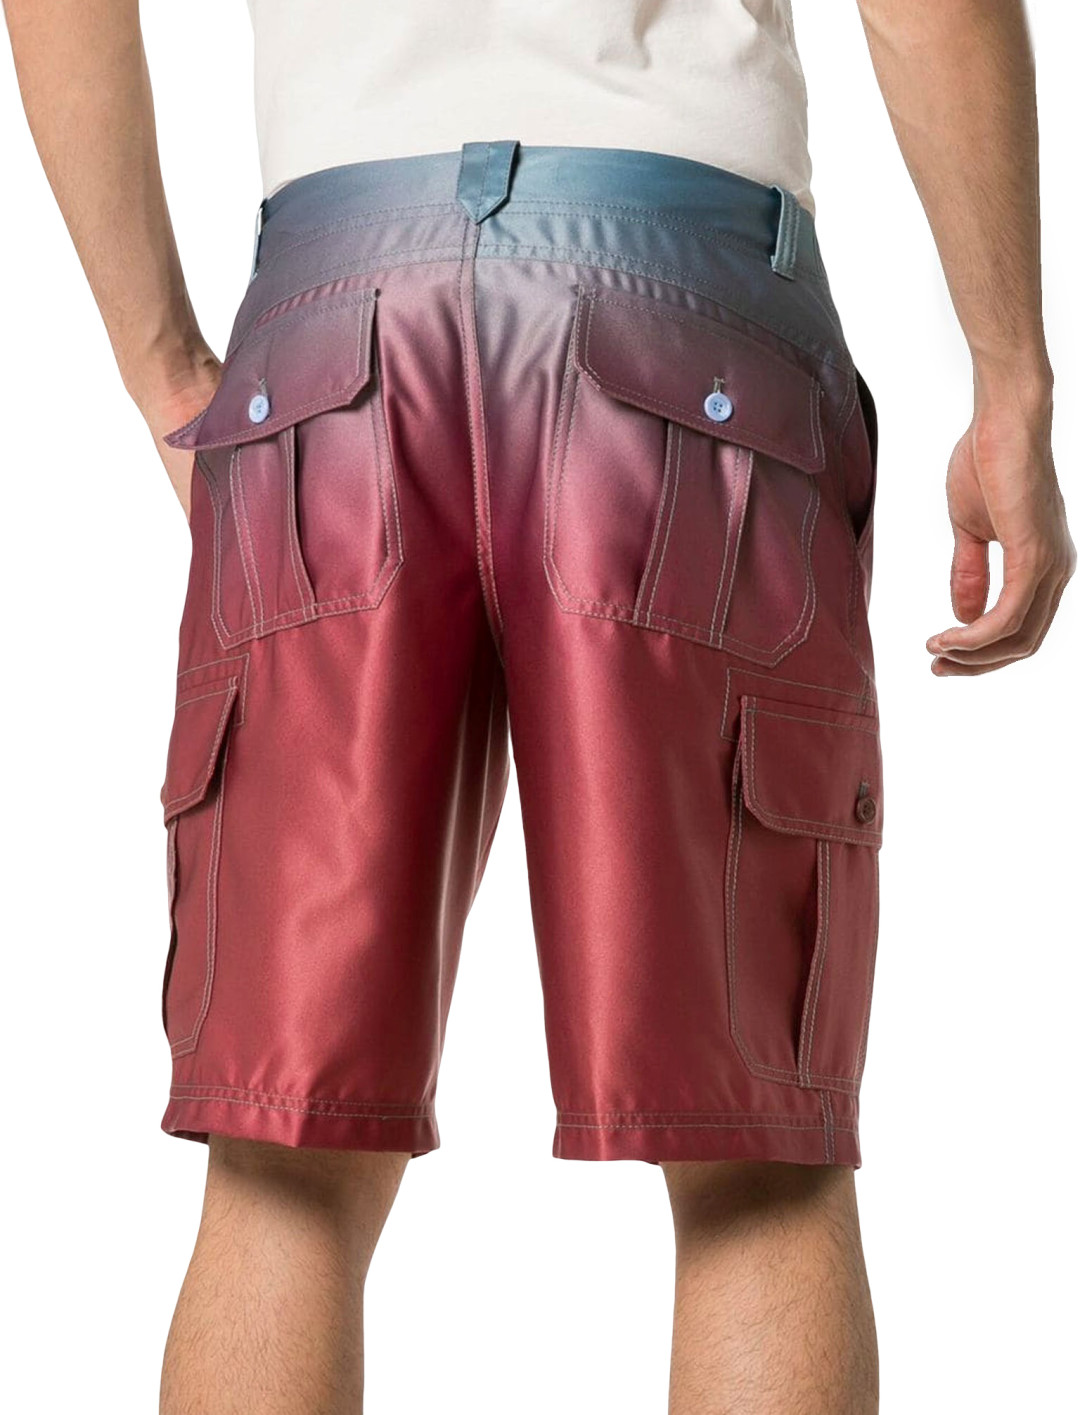 Ombre Shorts Clothing